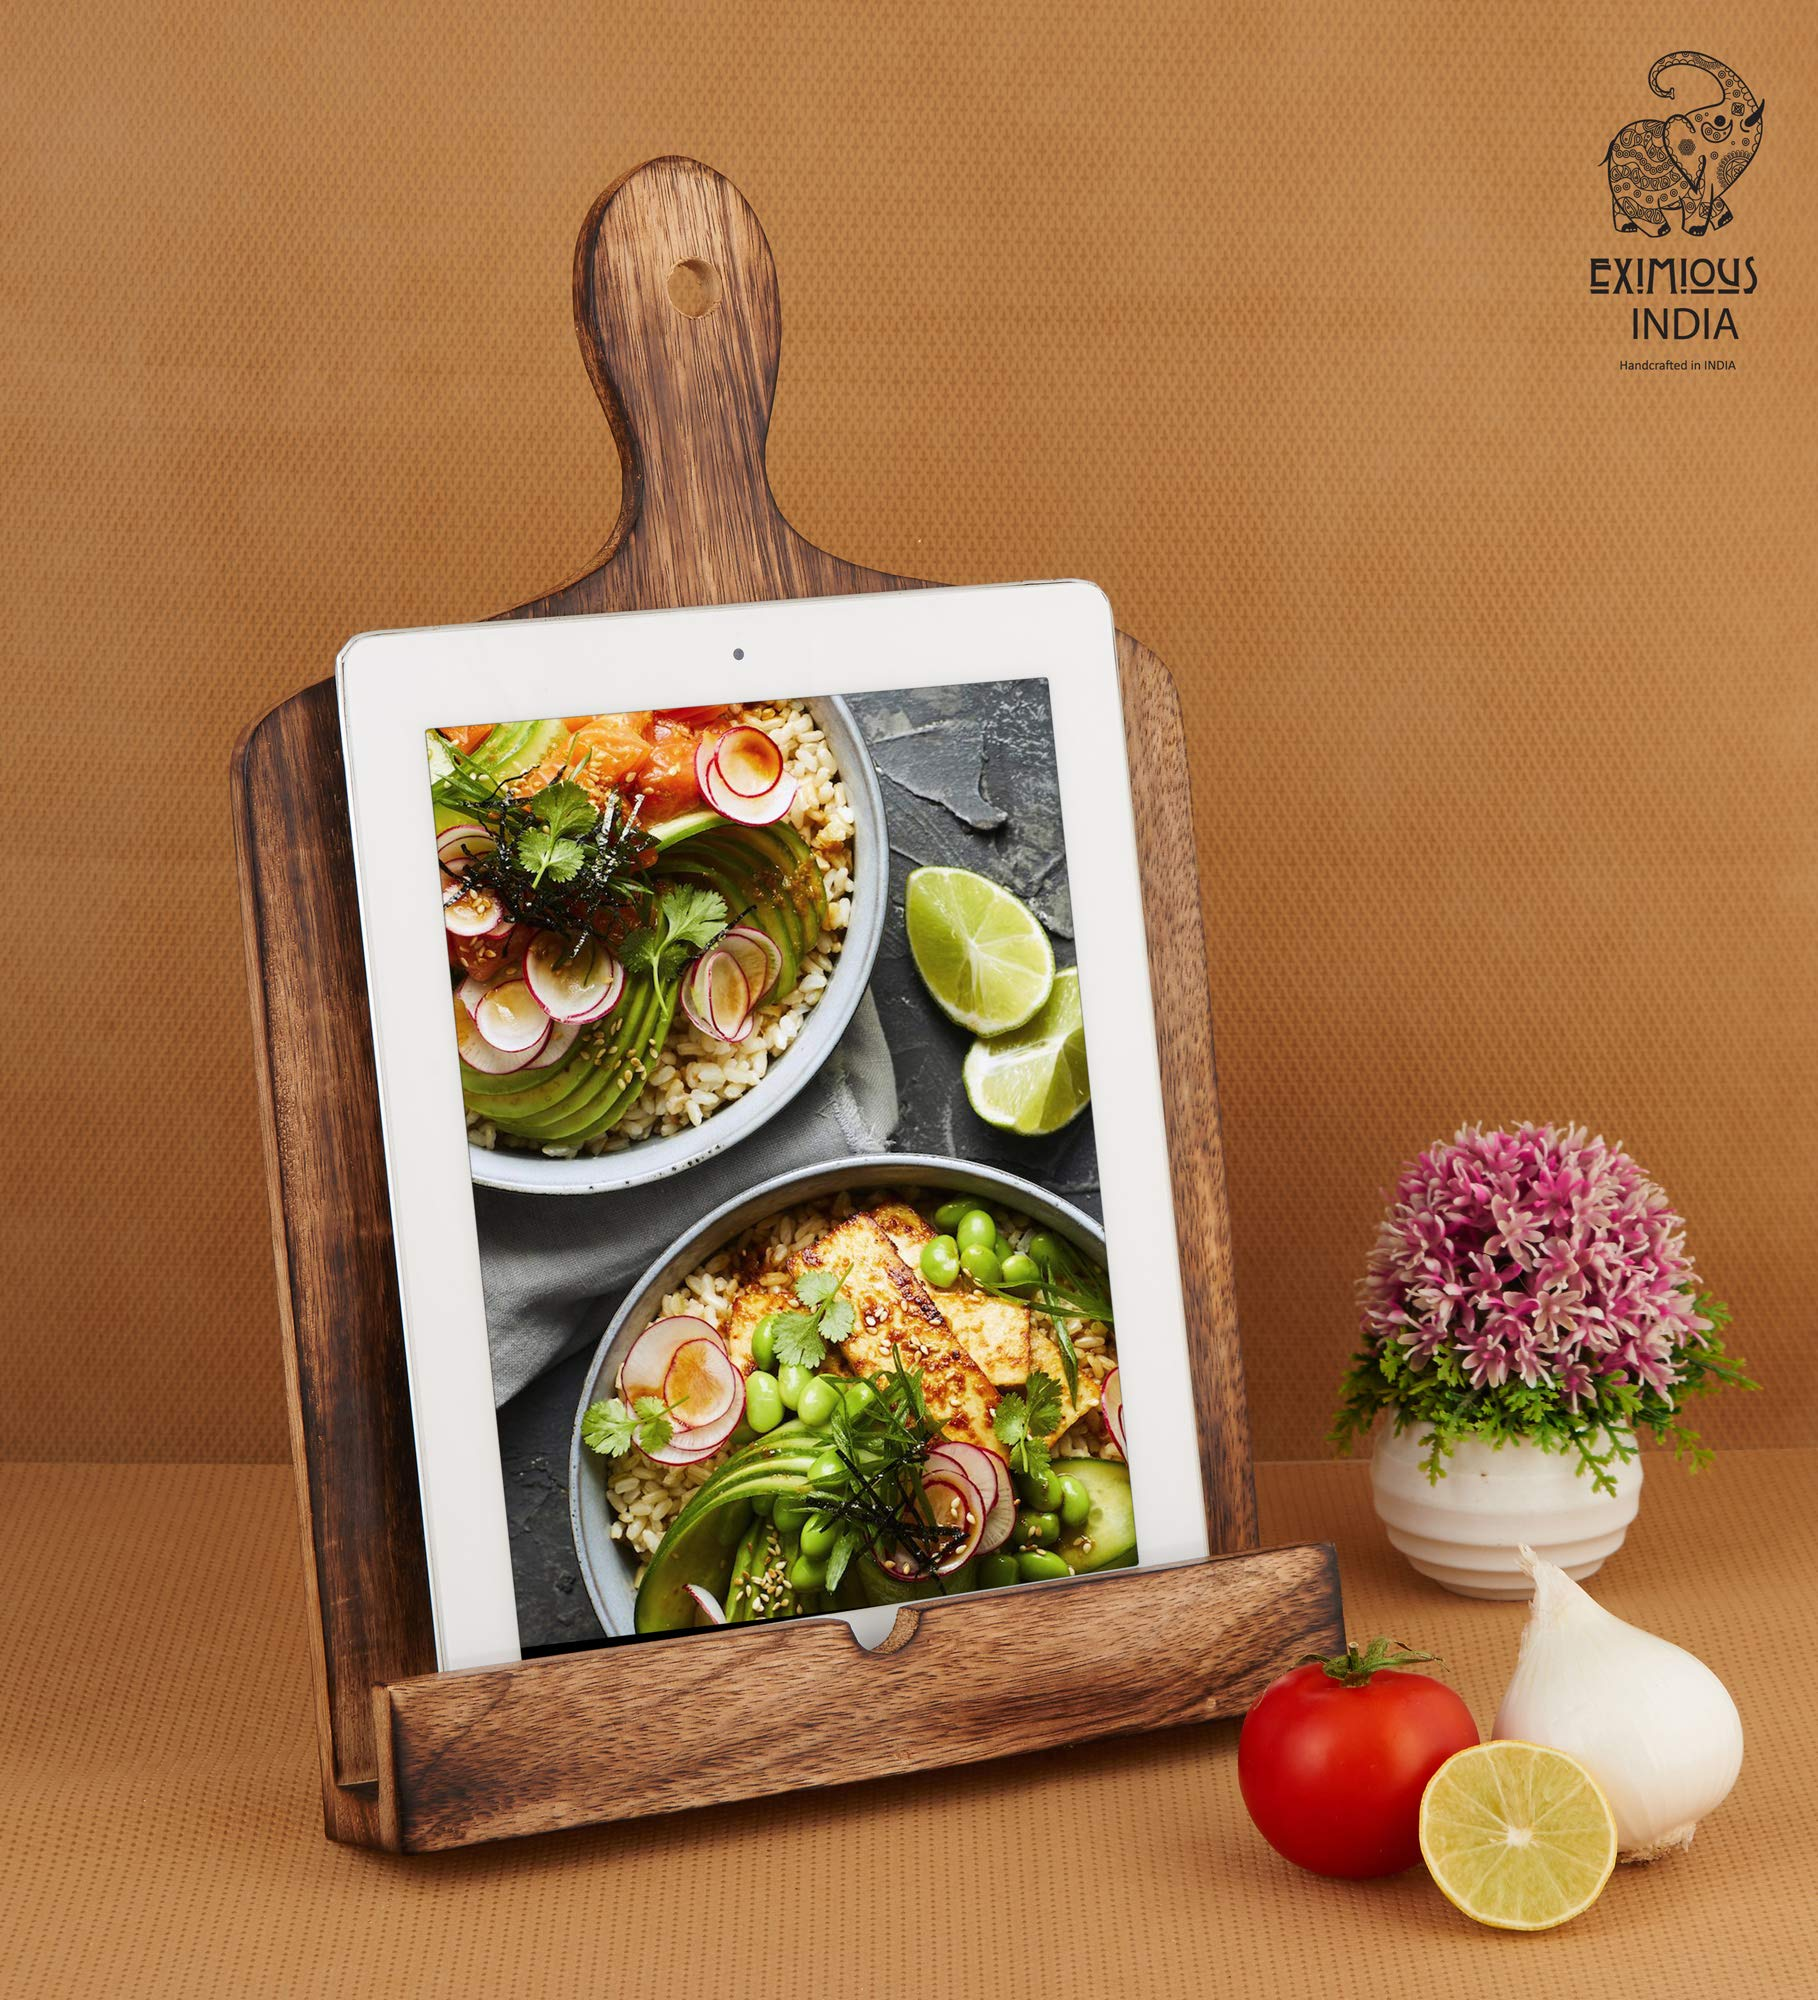 Eximious India Wooden Cookbook Stand Foldable Recipe Holder Text Book Ipad Tablet Made of Natural Wood Eco Friendly